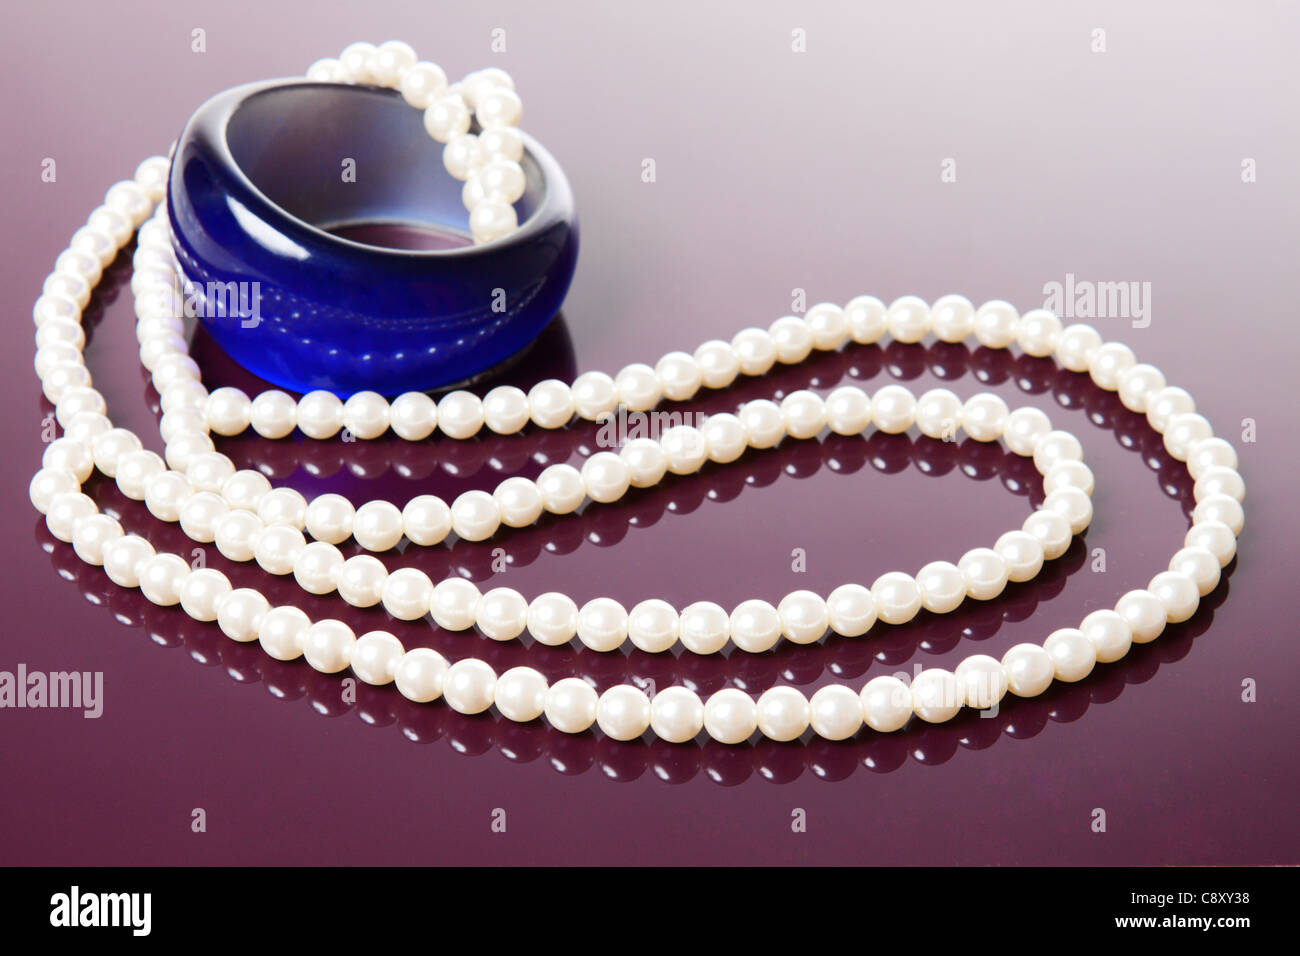 Pearl necklace and blue bracelet over glossy purple background - Stock Image